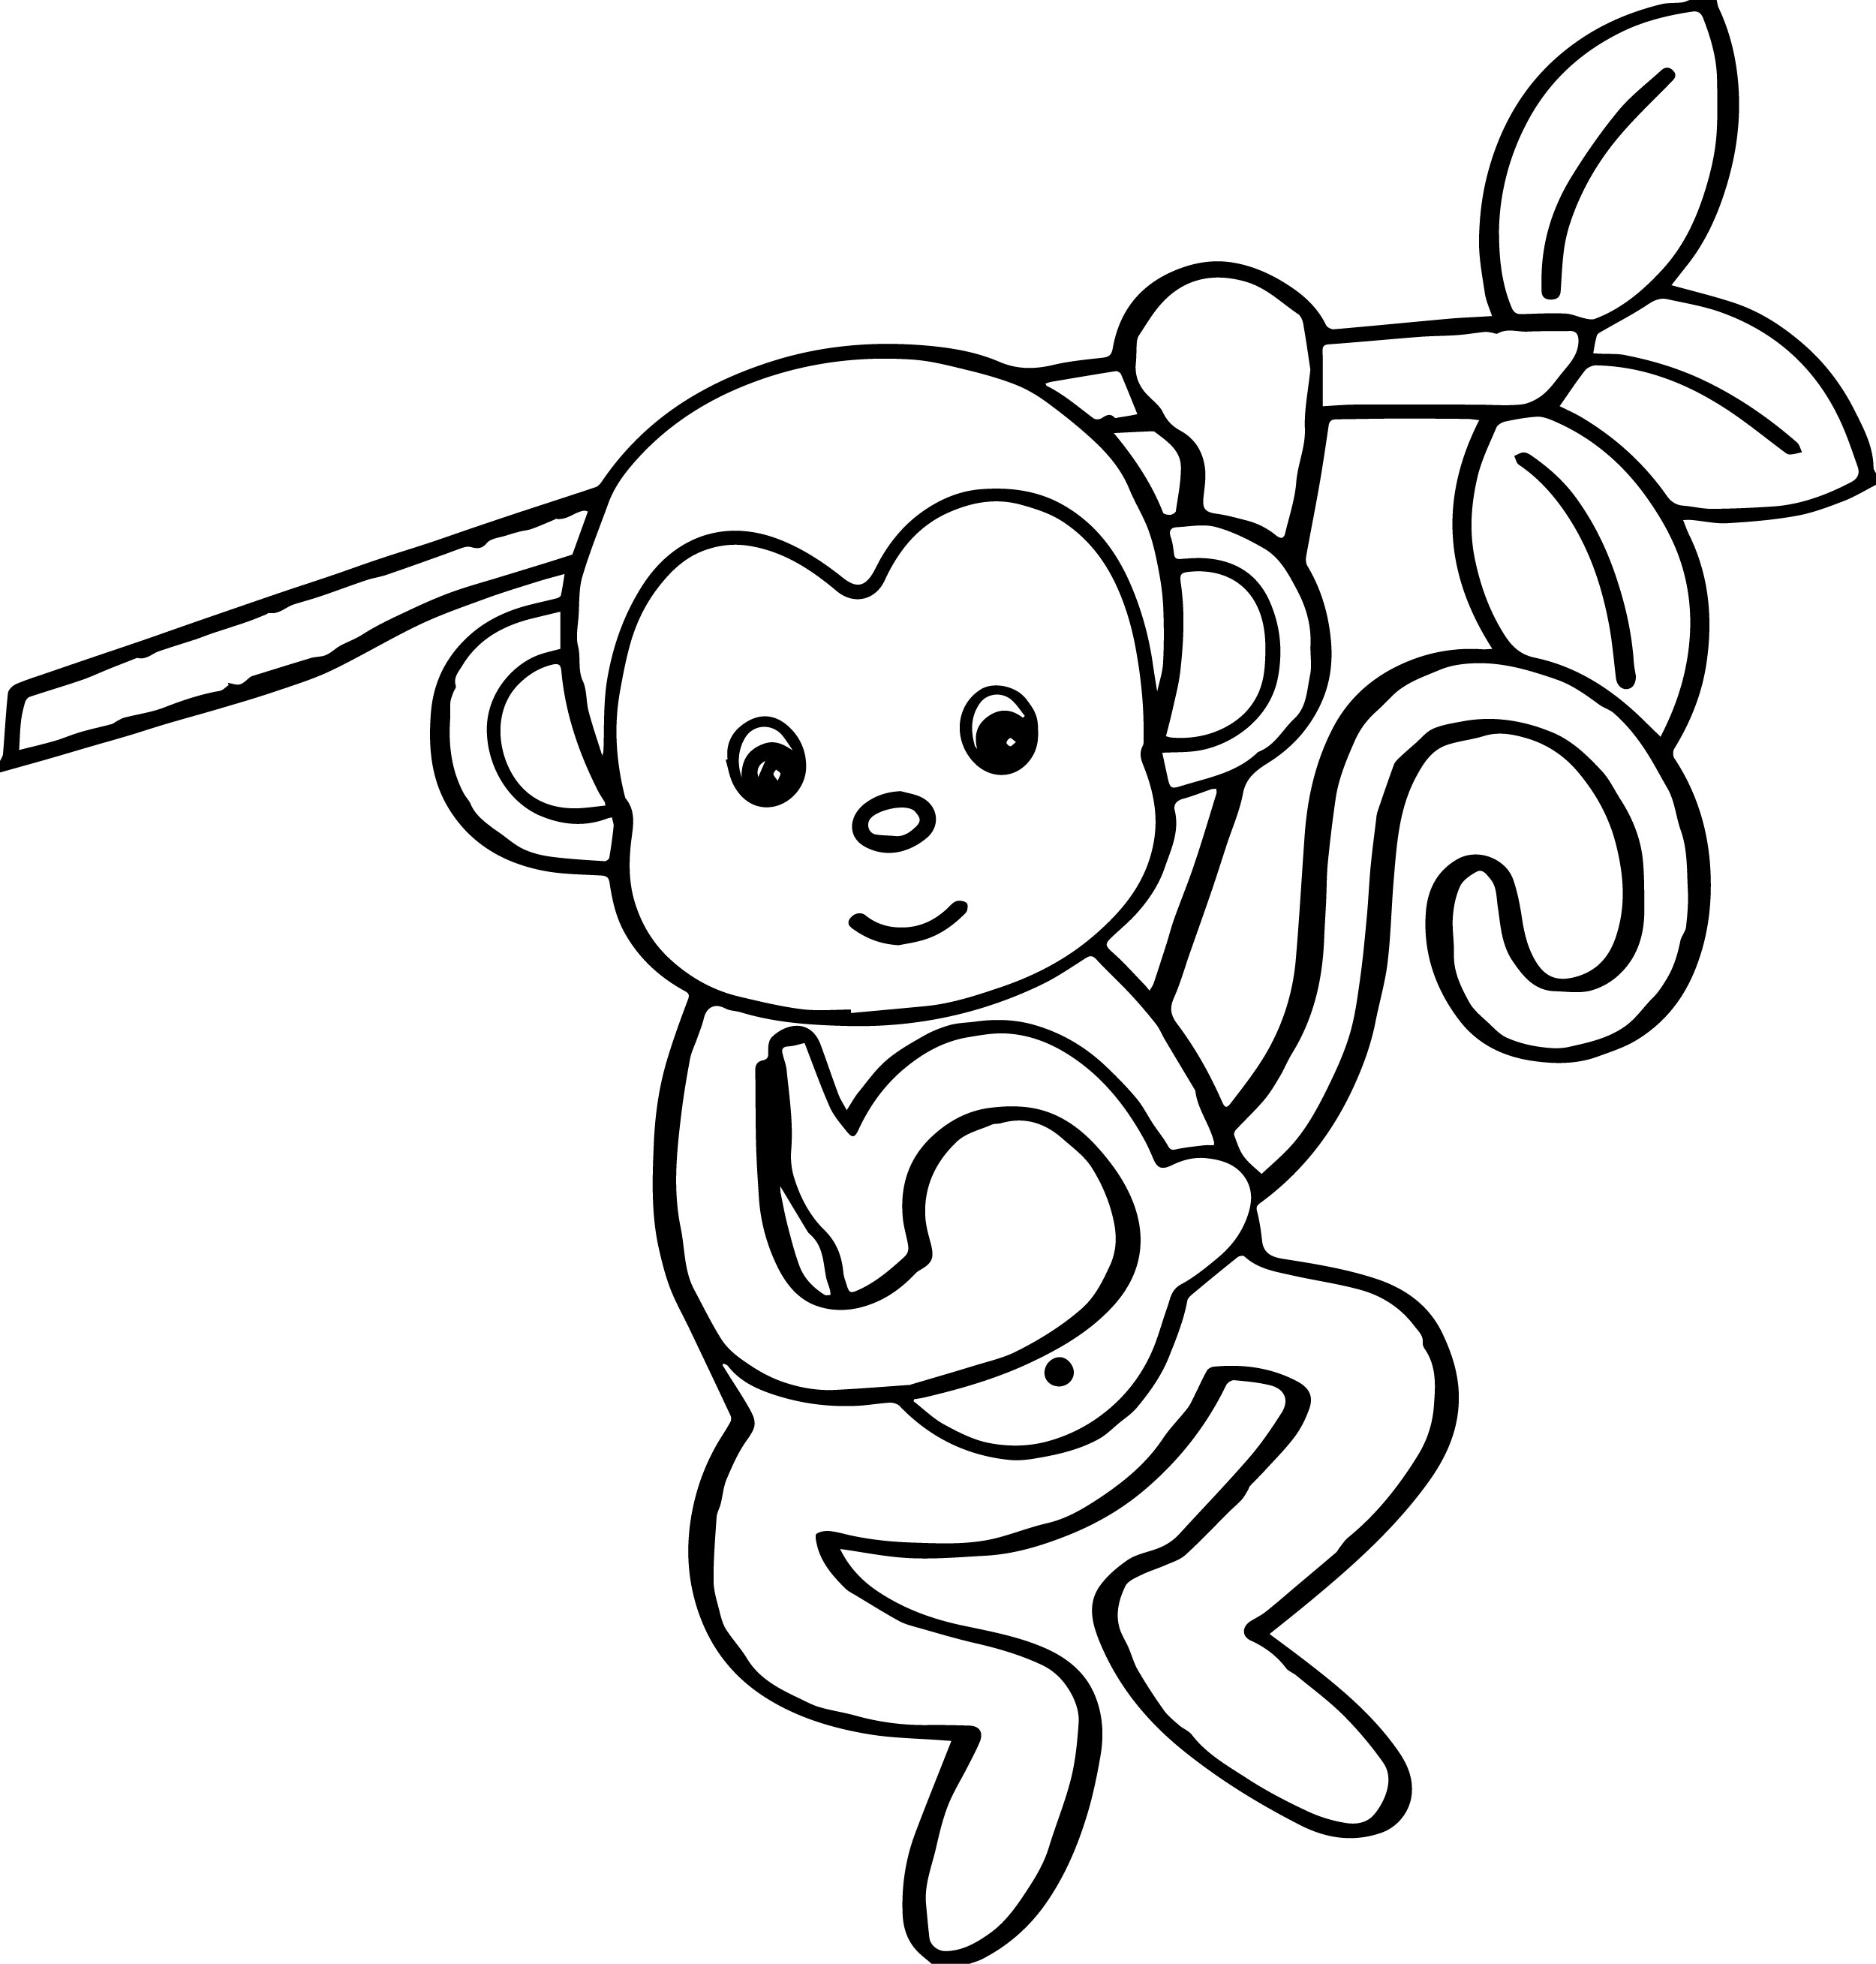 2500x2617 Awesome Cartoon Animals Coloring Pages Gallery Printable